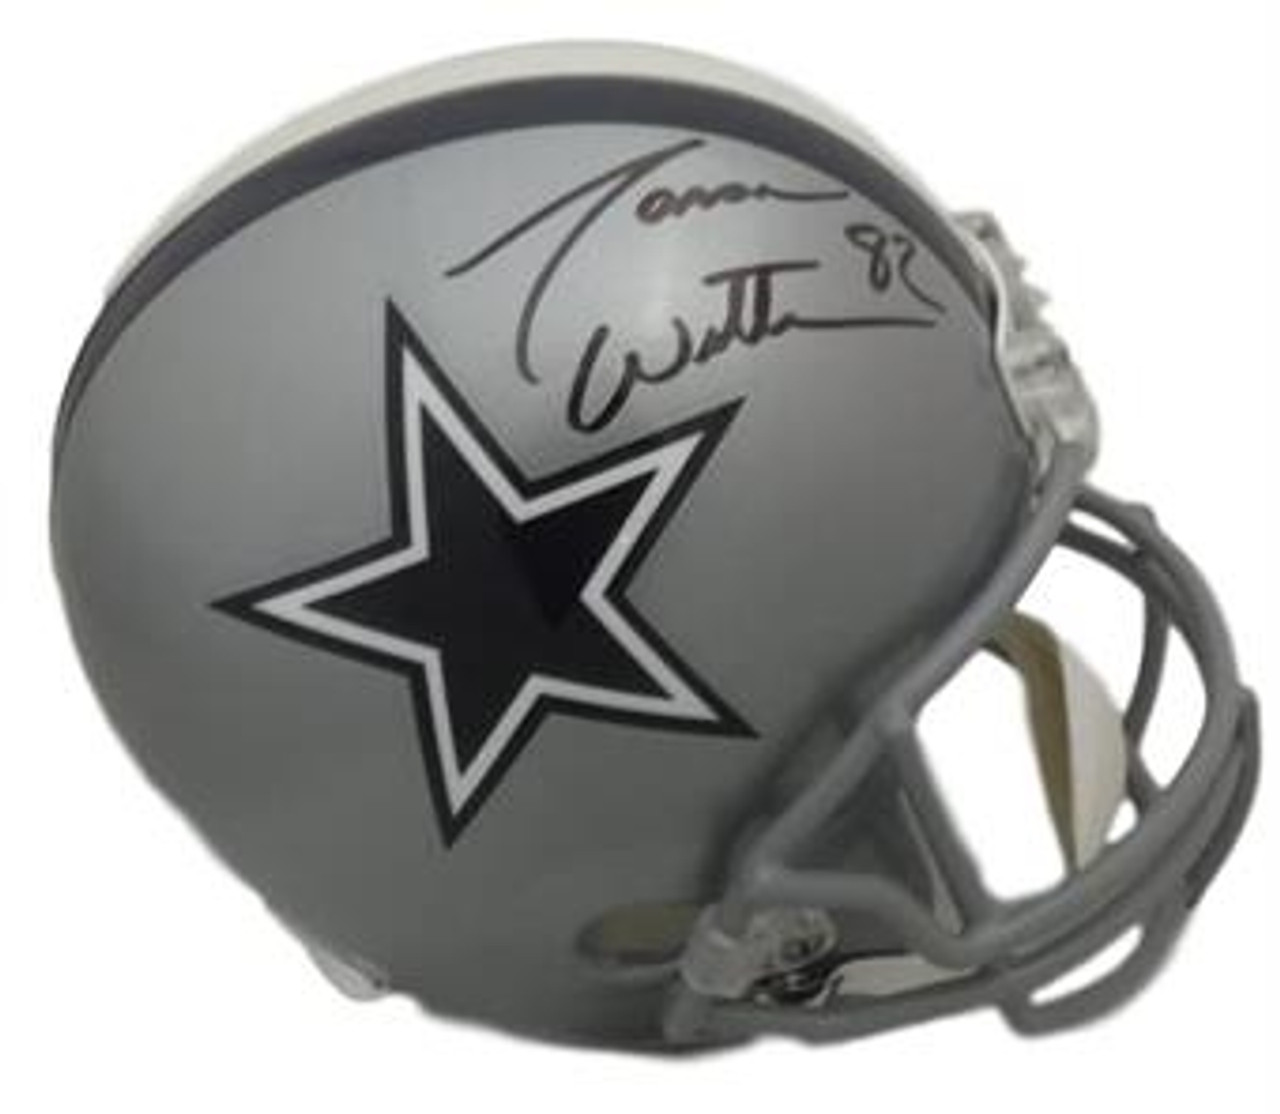 new concept 5f70a df1cc Jason Witten Autographed Dallas Cowboys Replica Helmet